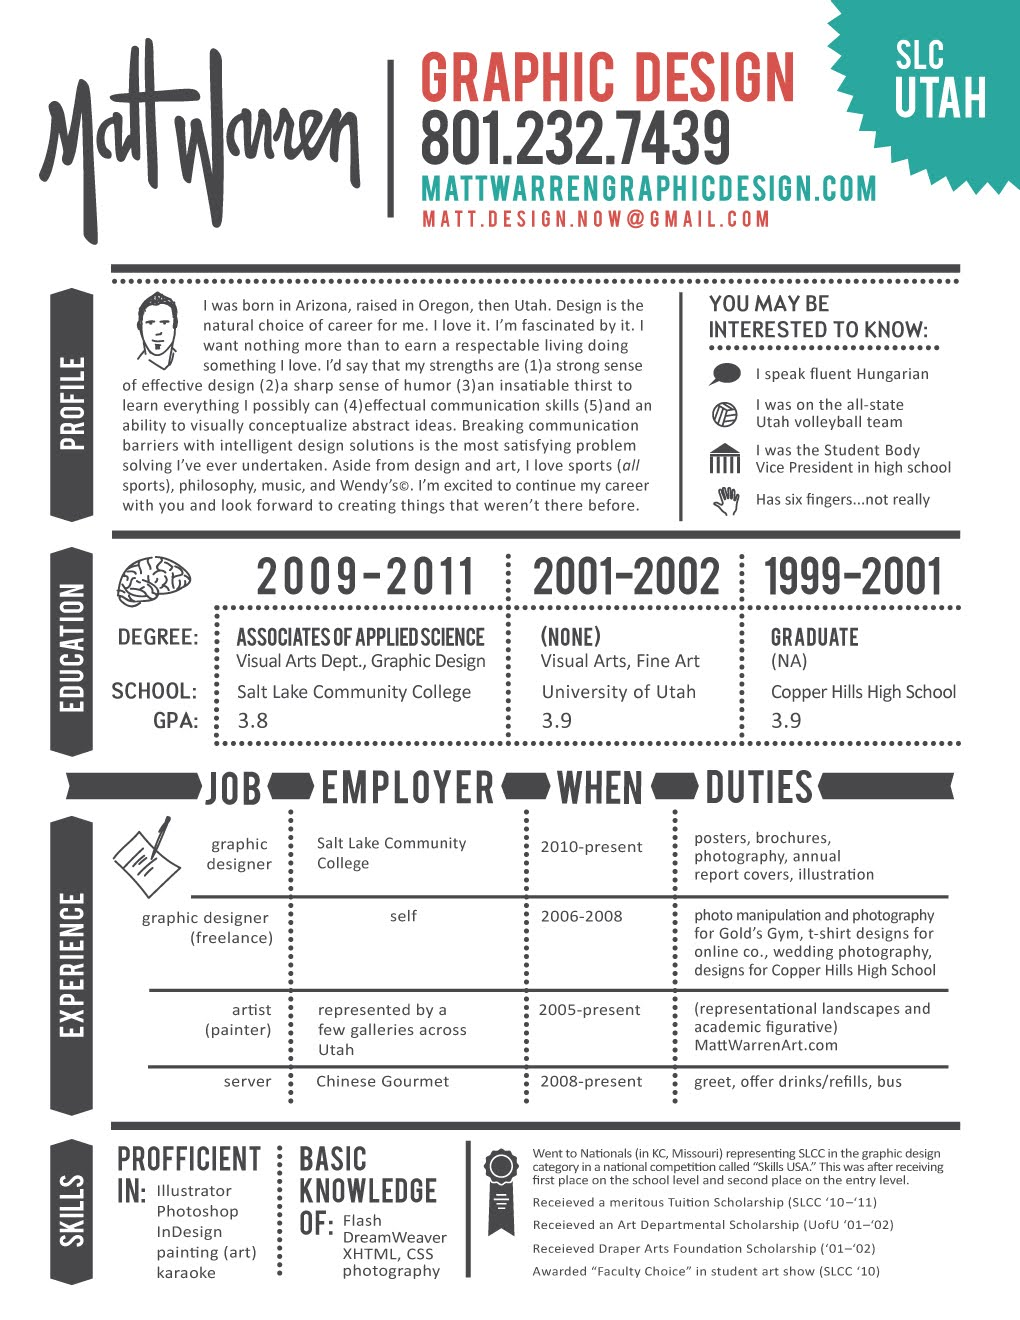 Opposenewapstandardsus  Nice  Images About Hire Me On Pinterest  Graphic Designer Resume  With Excellent  Images About Hire Me On Pinterest  Graphic Designer Resume Resume Design And Resume With Awesome Example Of Great Resume Also Resume Lay Out In Addition Cio Resume Examples And Personal Profile Resume As Well As Resume Builder Free Print Additionally Resume Templates Mac From Pinterestcom With Opposenewapstandardsus  Excellent  Images About Hire Me On Pinterest  Graphic Designer Resume  With Awesome  Images About Hire Me On Pinterest  Graphic Designer Resume Resume Design And Resume And Nice Example Of Great Resume Also Resume Lay Out In Addition Cio Resume Examples From Pinterestcom